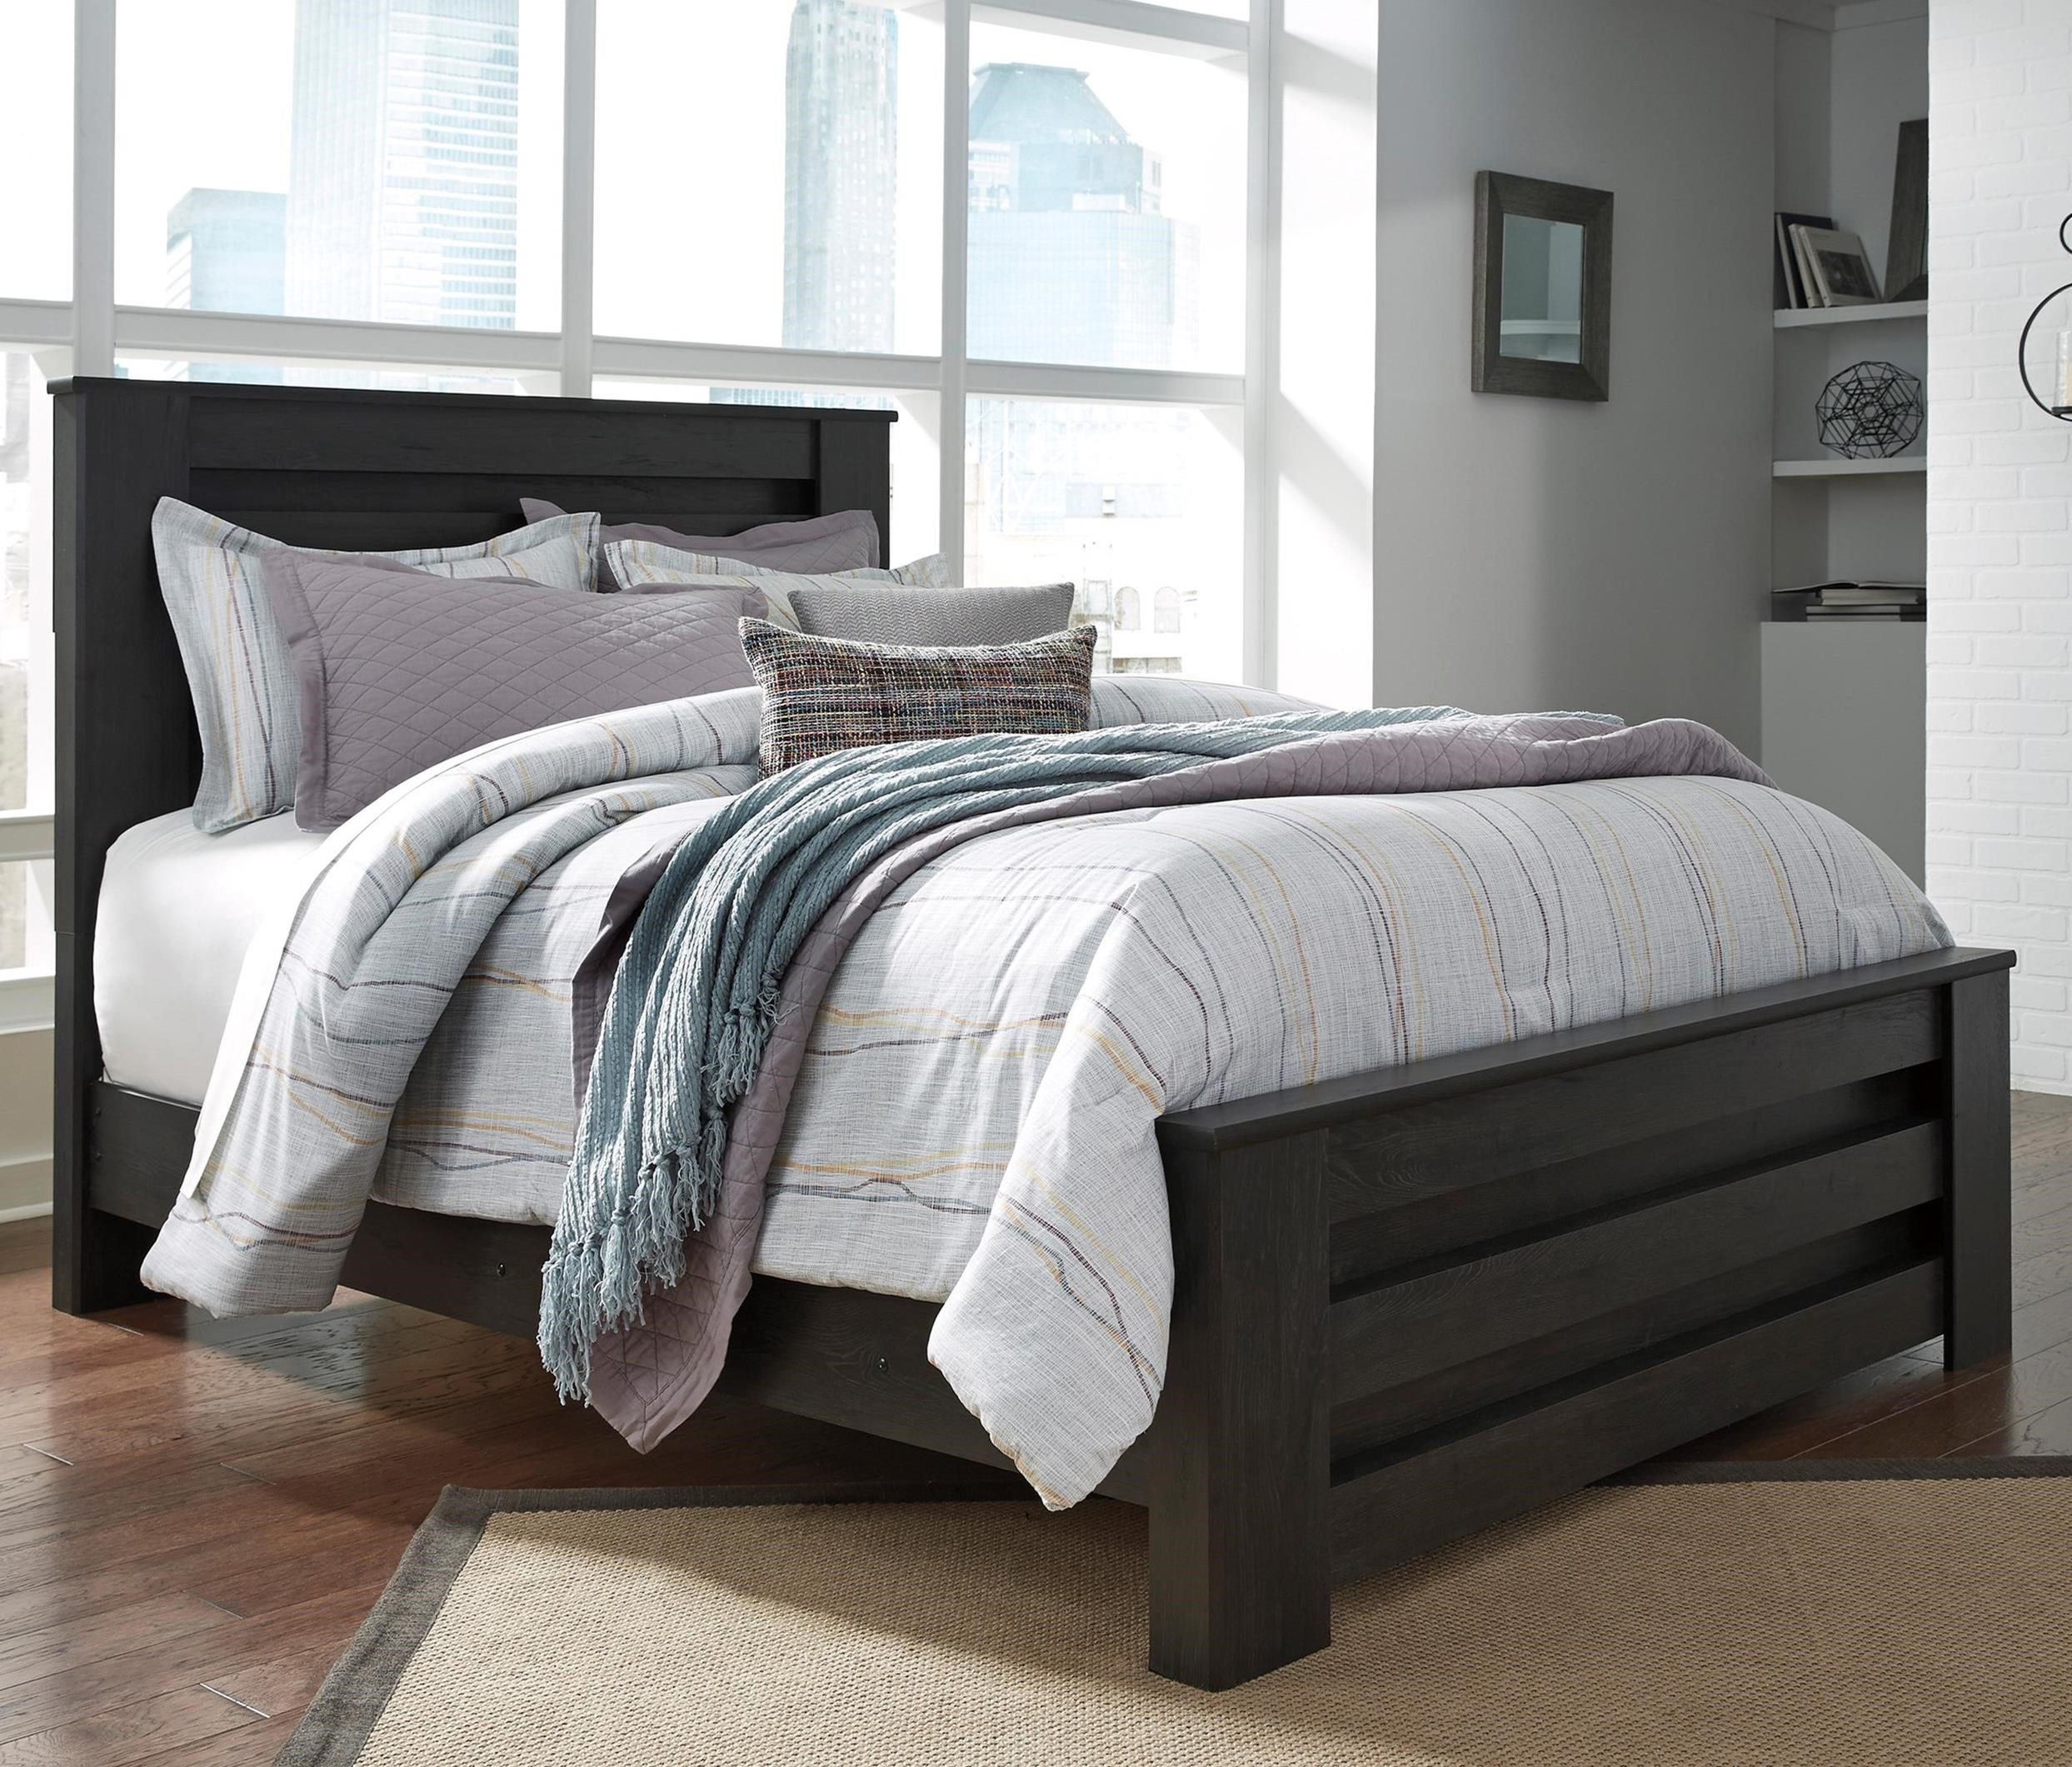 Brinxton Queen Panel Bed by Signature Design by Ashley at Northeast Factory Direct